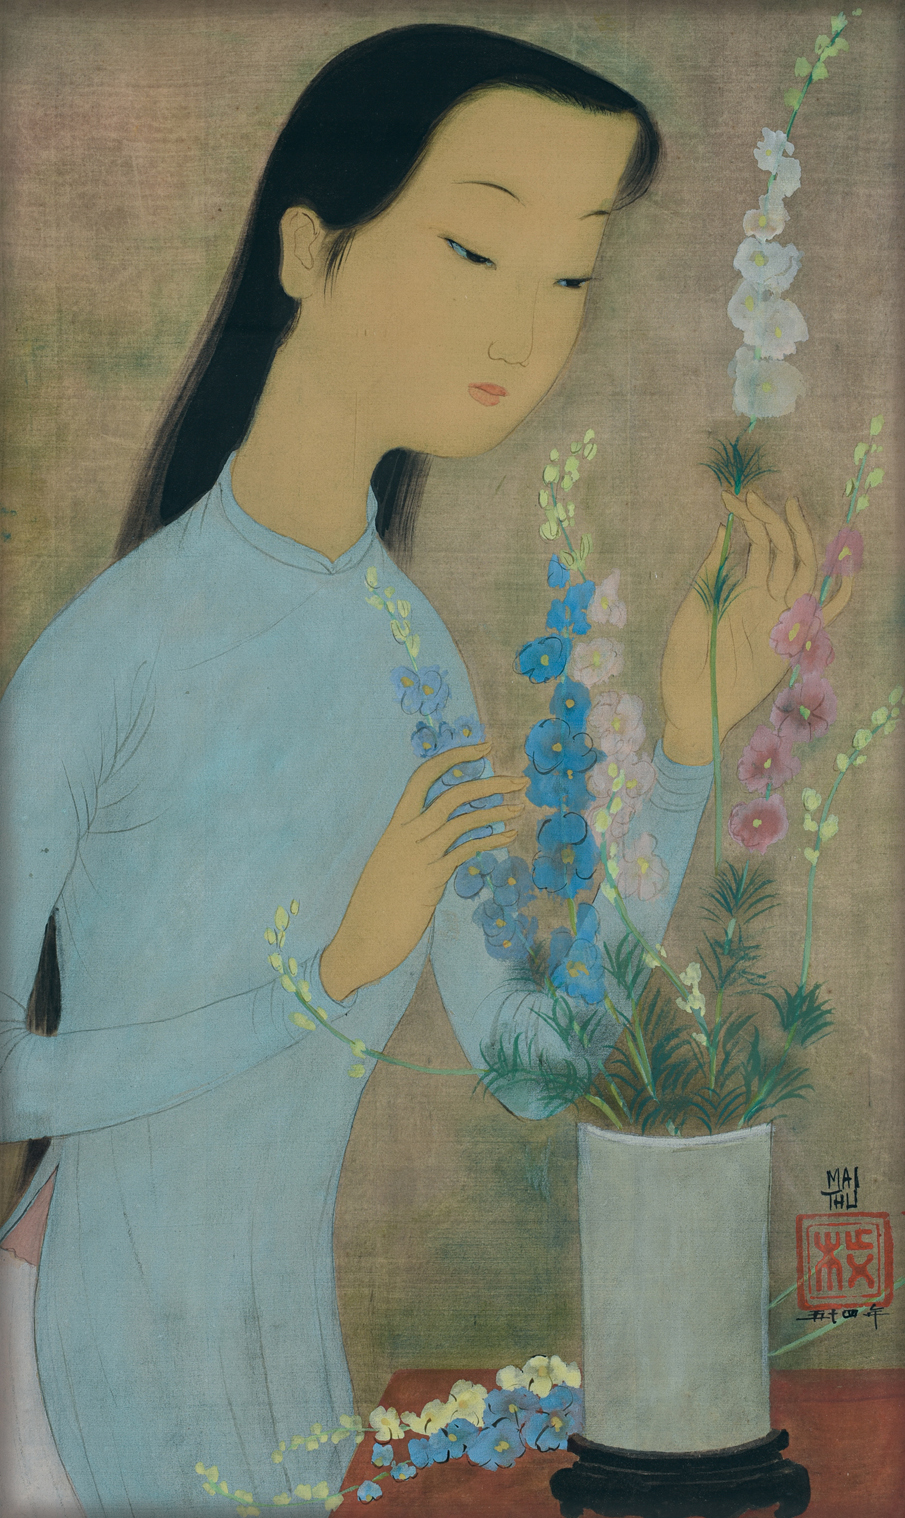 Mai Trung Thu, Jeune Femme Arrangeant des Fleurs (Young Woman Arranging Flowers), ink and gouache on silk, 46.5 x 28.5 cm, 1954